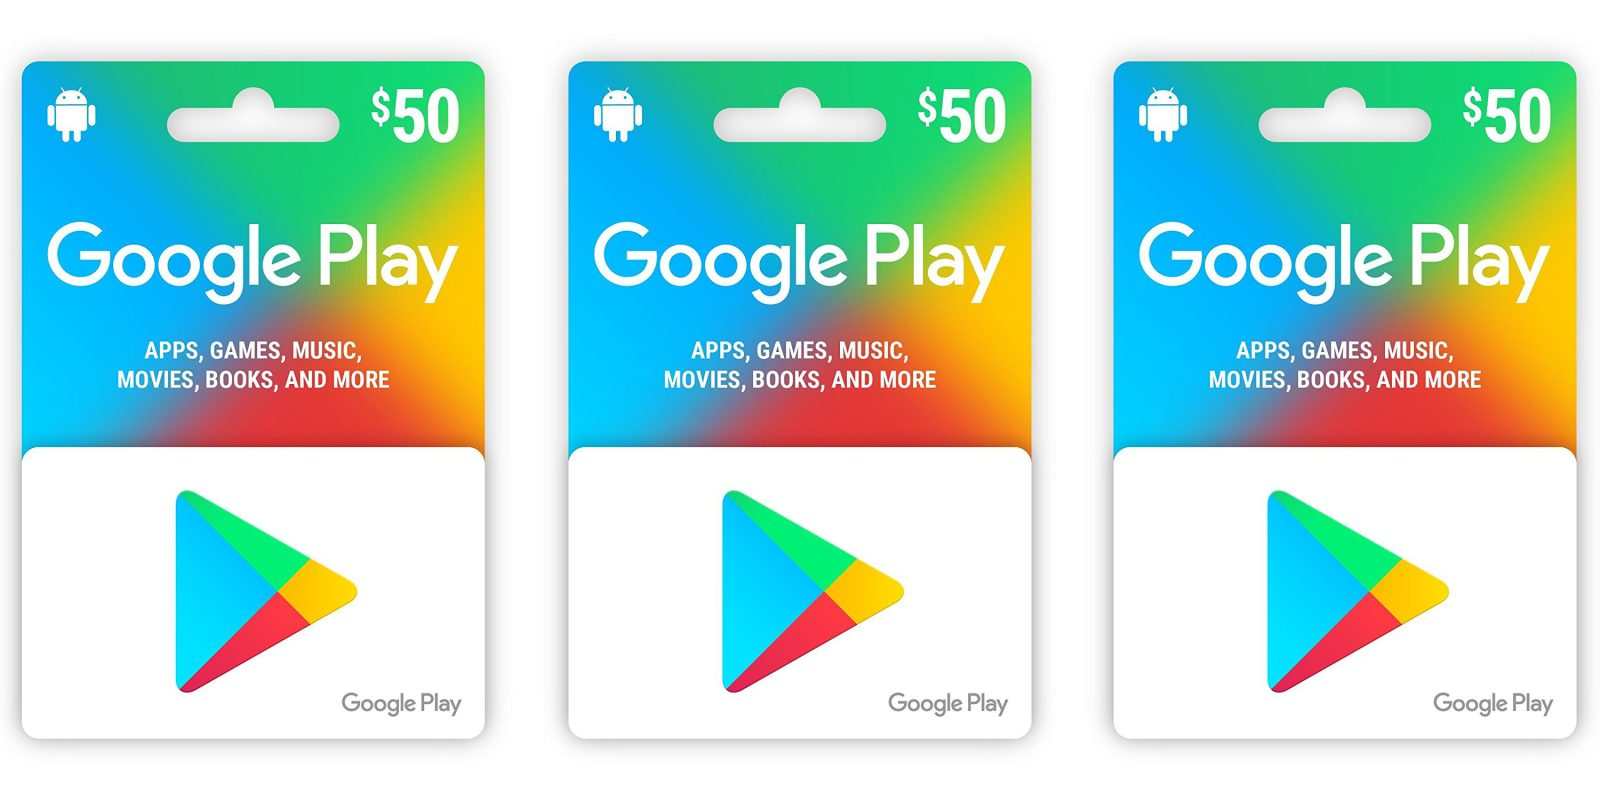 google play hulu gift cards 5 in free best buy credit from 50 9to5toys. Black Bedroom Furniture Sets. Home Design Ideas